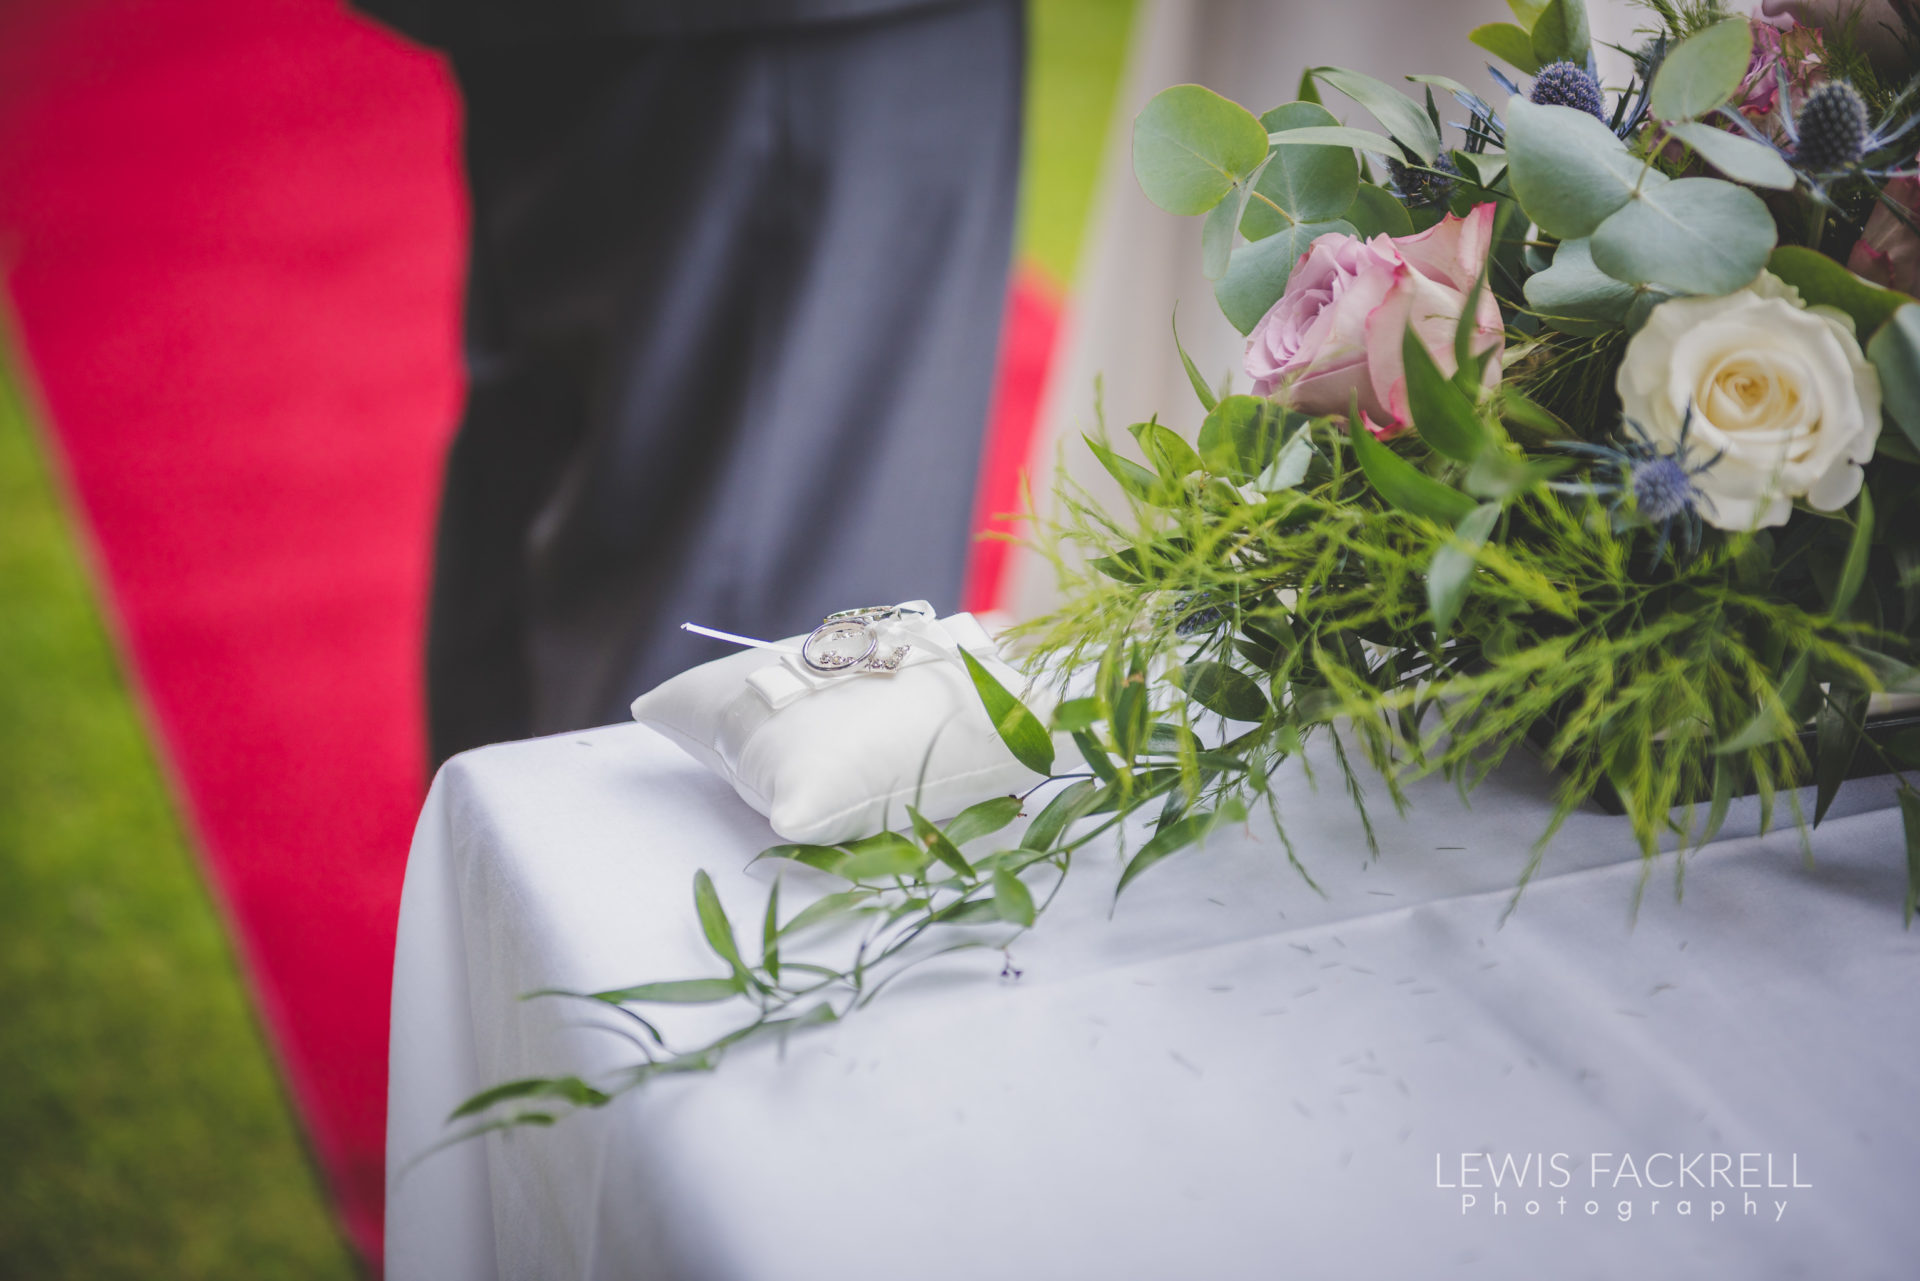 Lewis-Fackrell-Photography-Wedding-Photographer-Cardiff-Swansea-Bristol-Newport-Pre-wedding-photoshoot-Rhian-Mark-Mansion-House-Llansteffan-Carmarthenshire--44